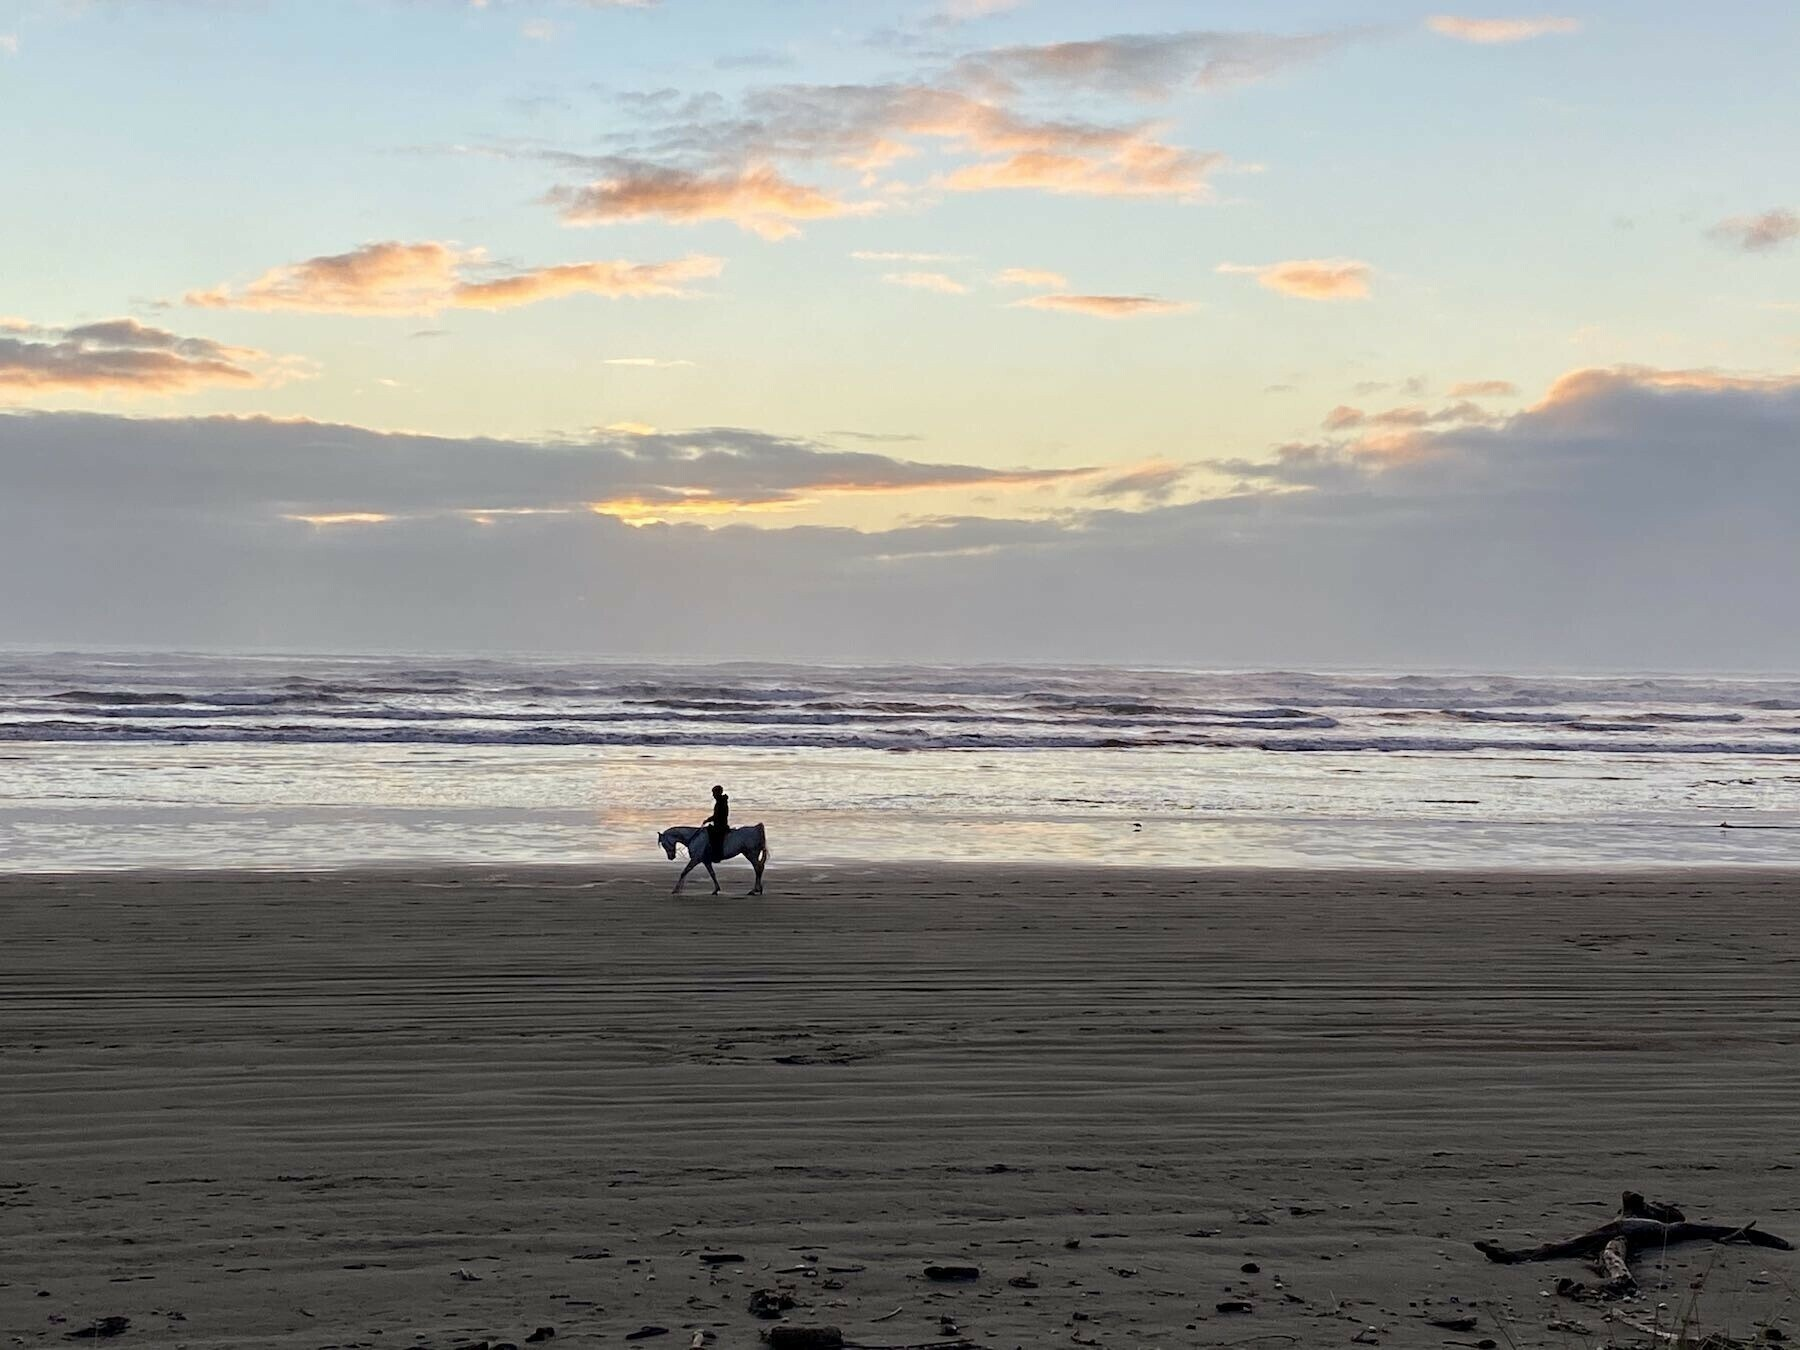 Horse and rider at the edge of the sea, with setting sun reflections on the water.